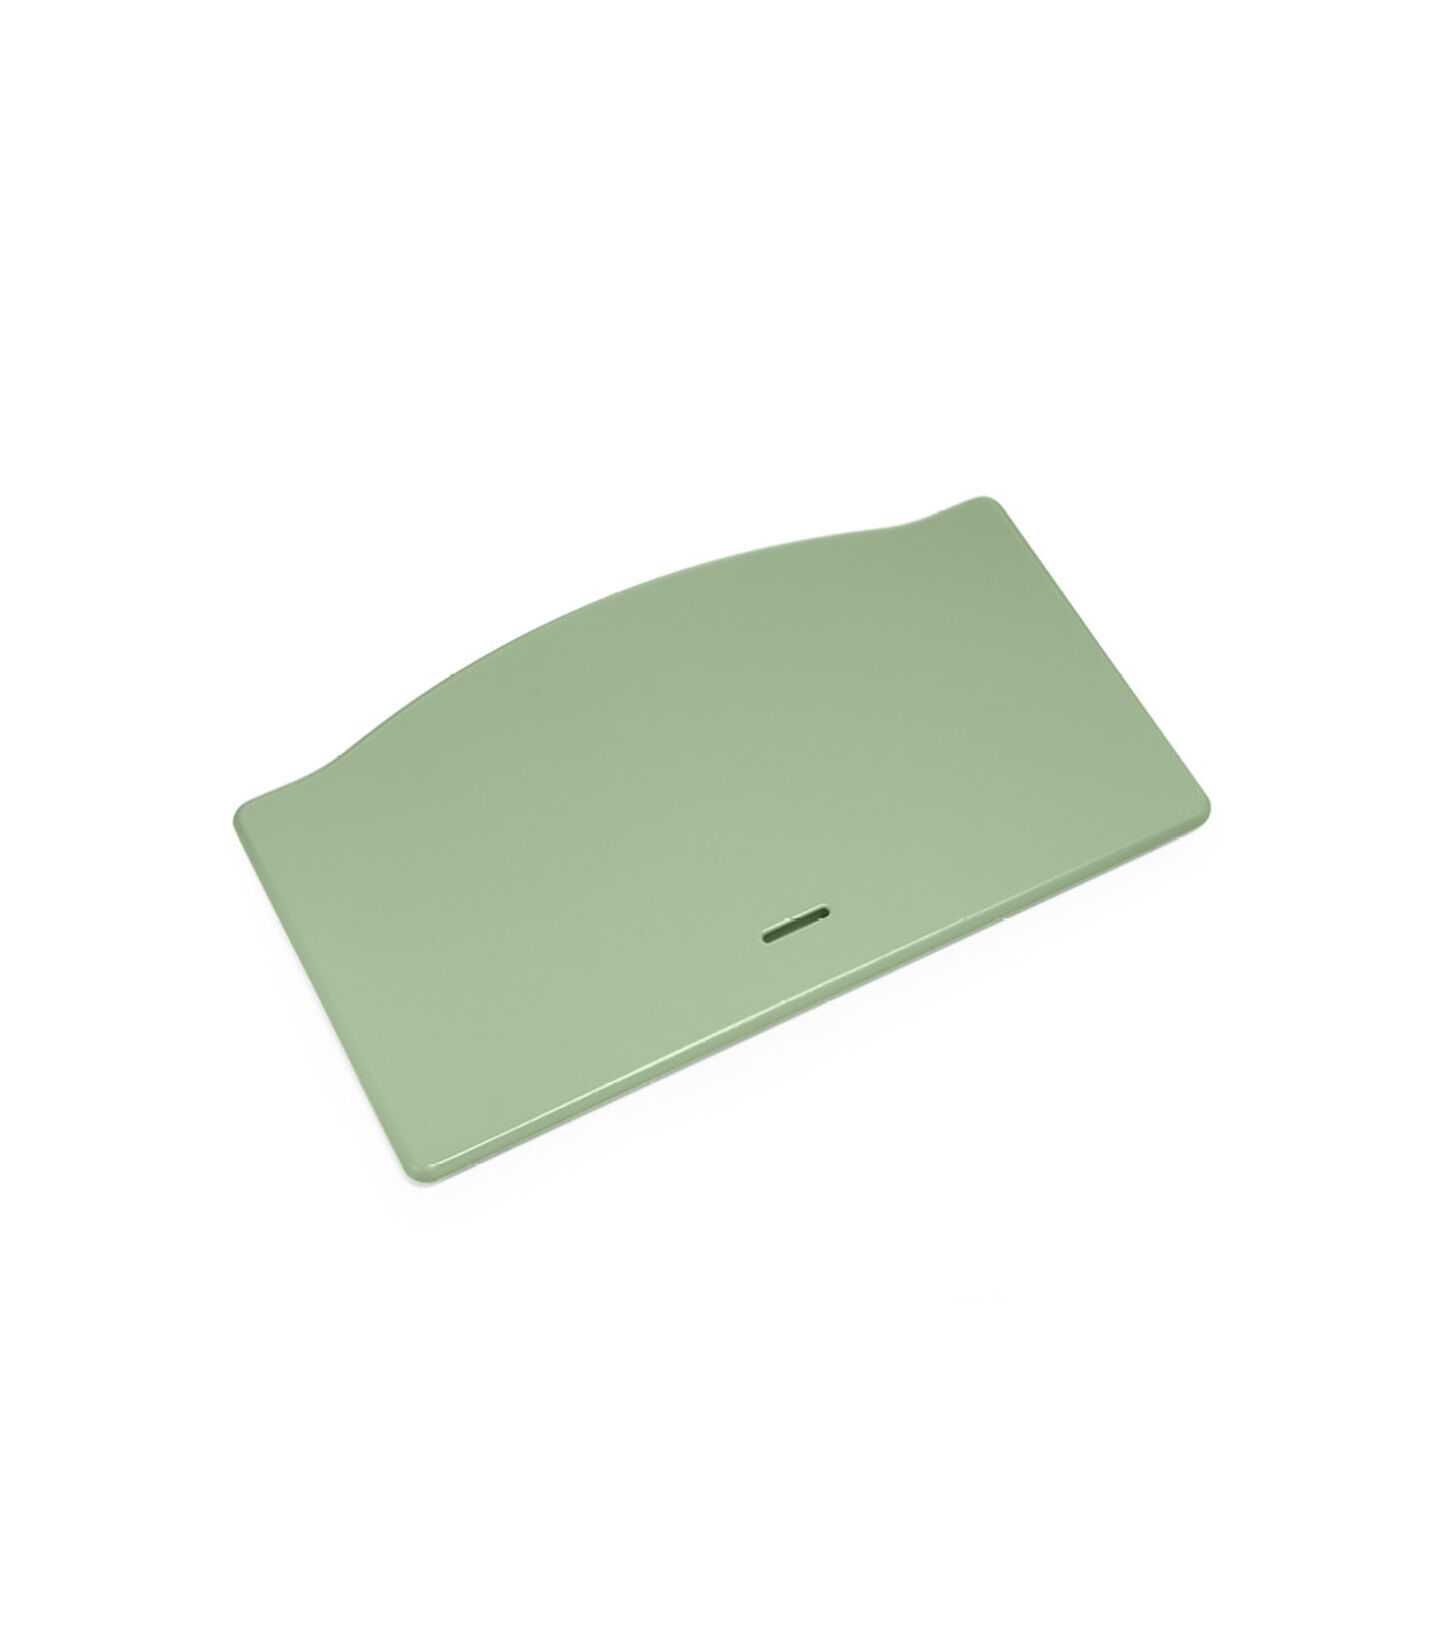 Tripp Trapp® Seatplate Moss Green, Moss Green, mainview view 1